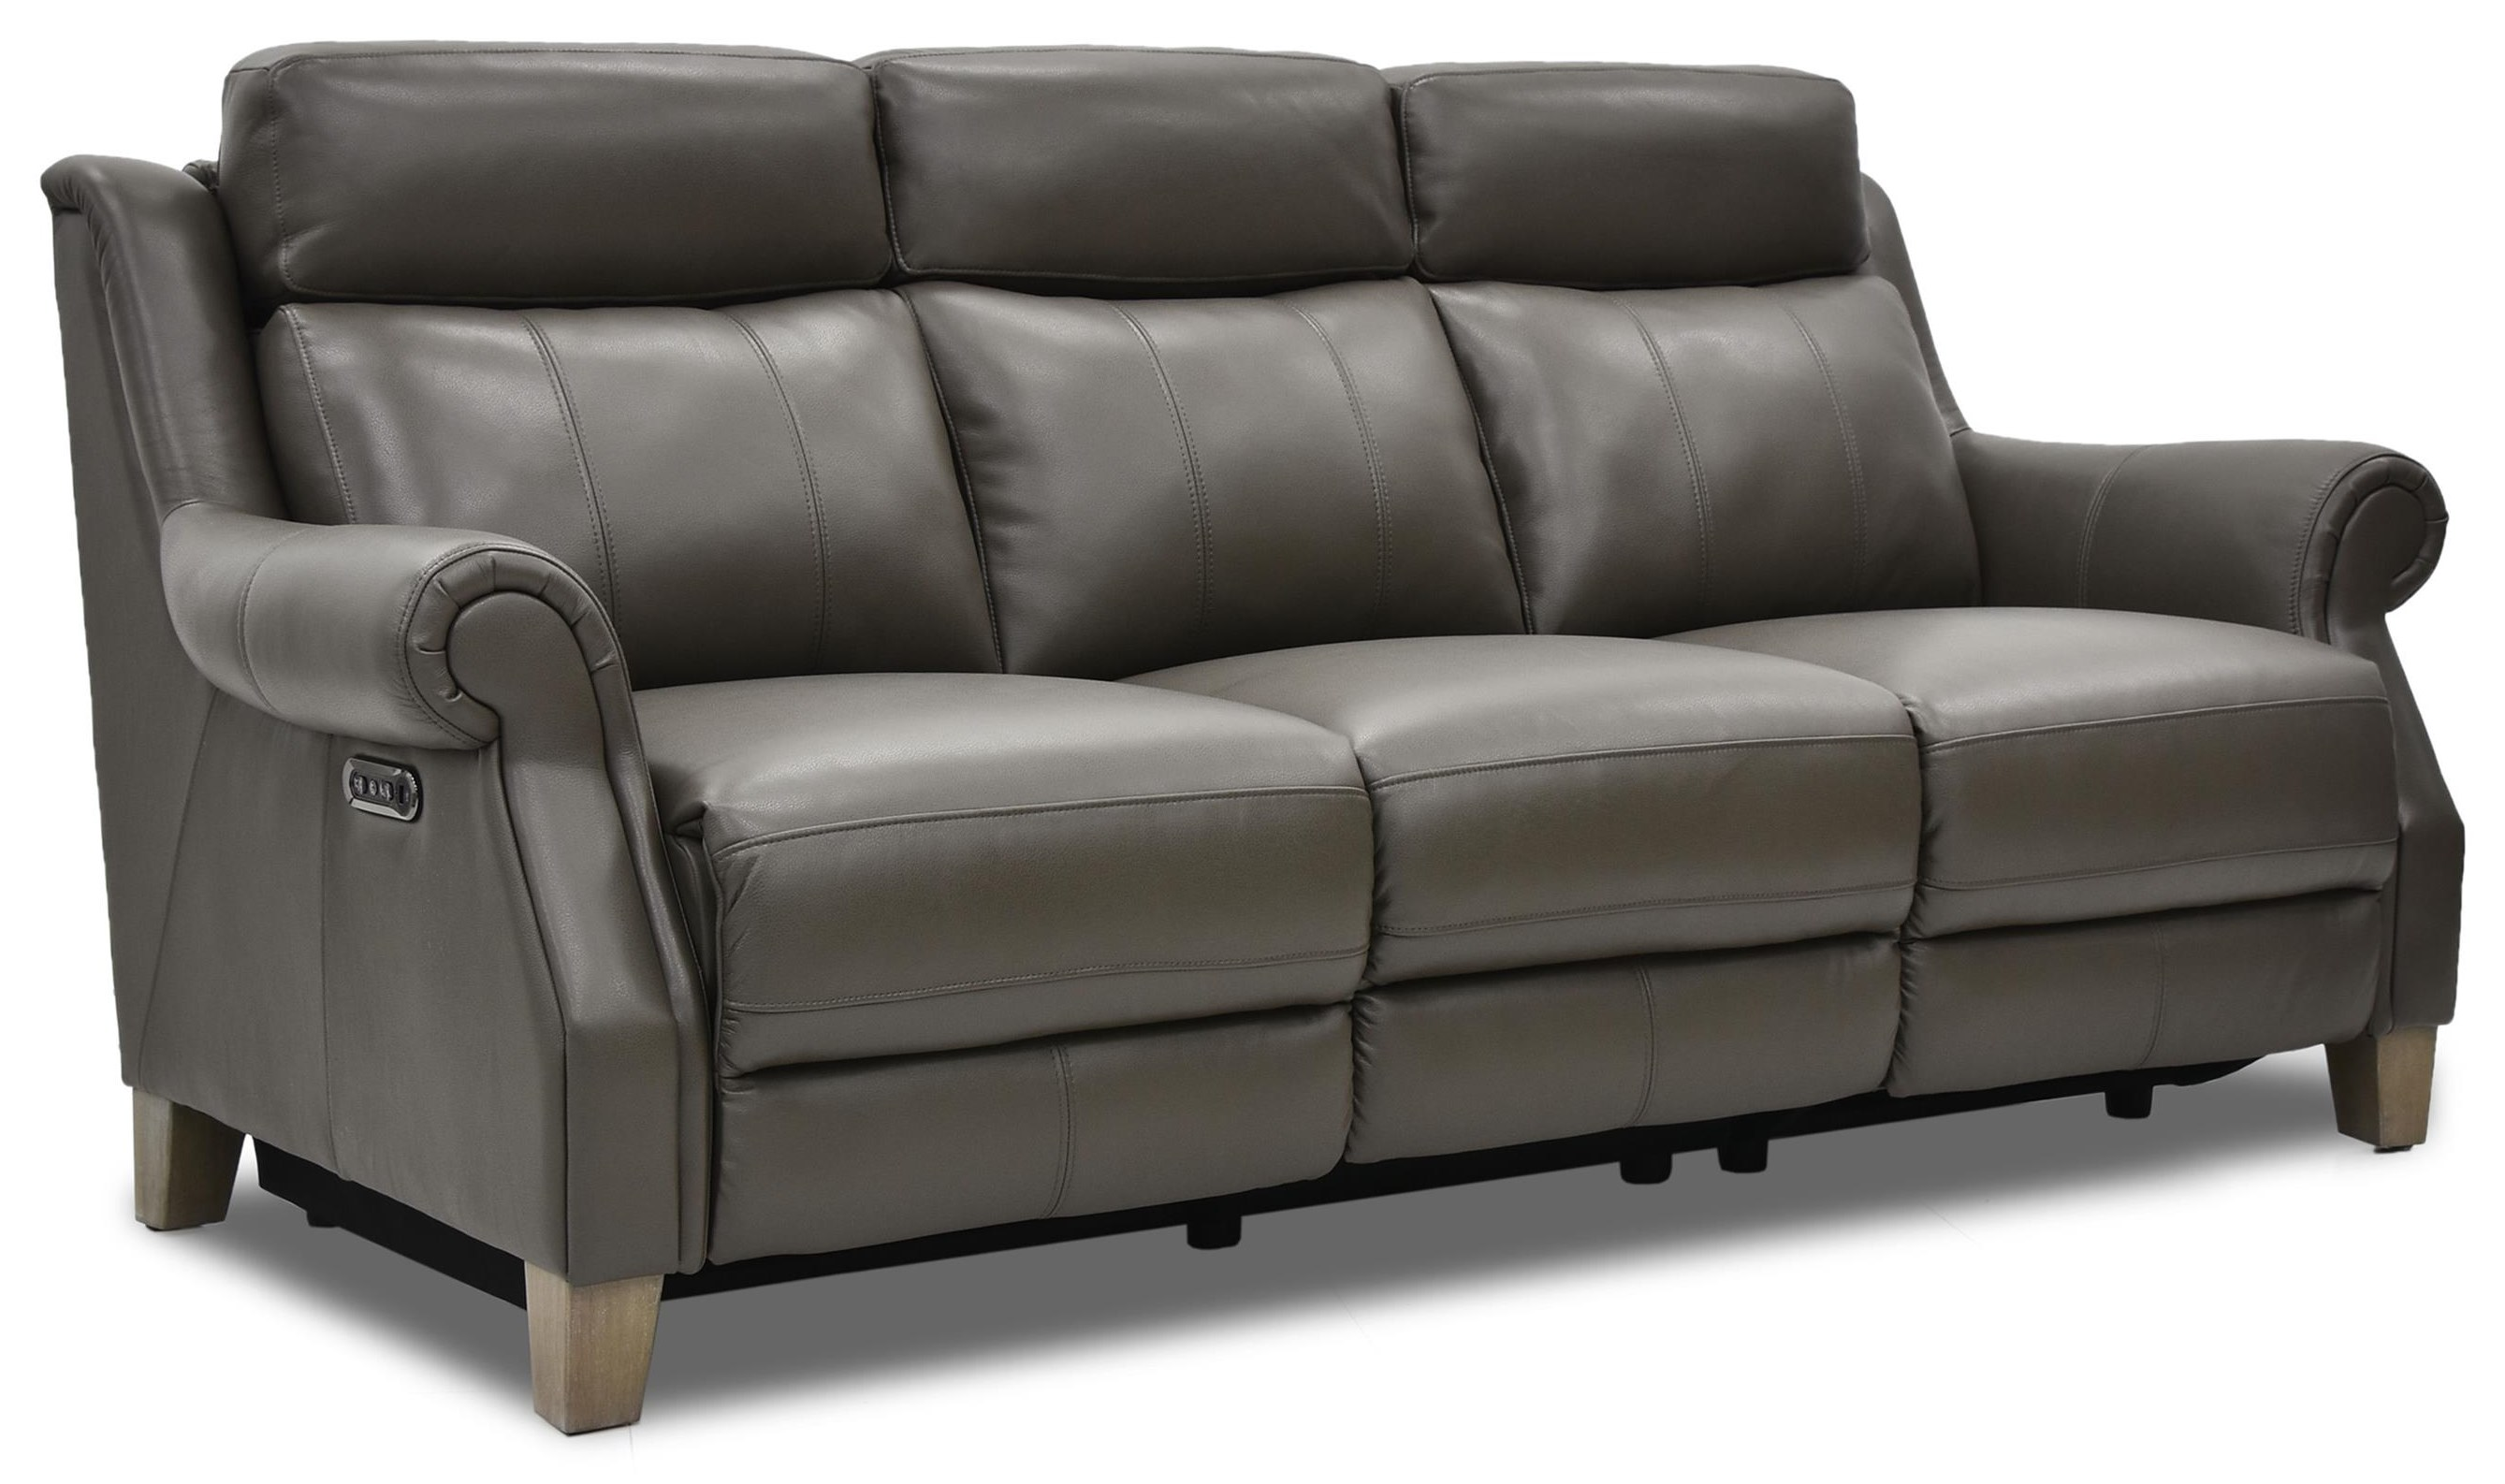 Via Power Reclining Leather Sofa at Rotmans